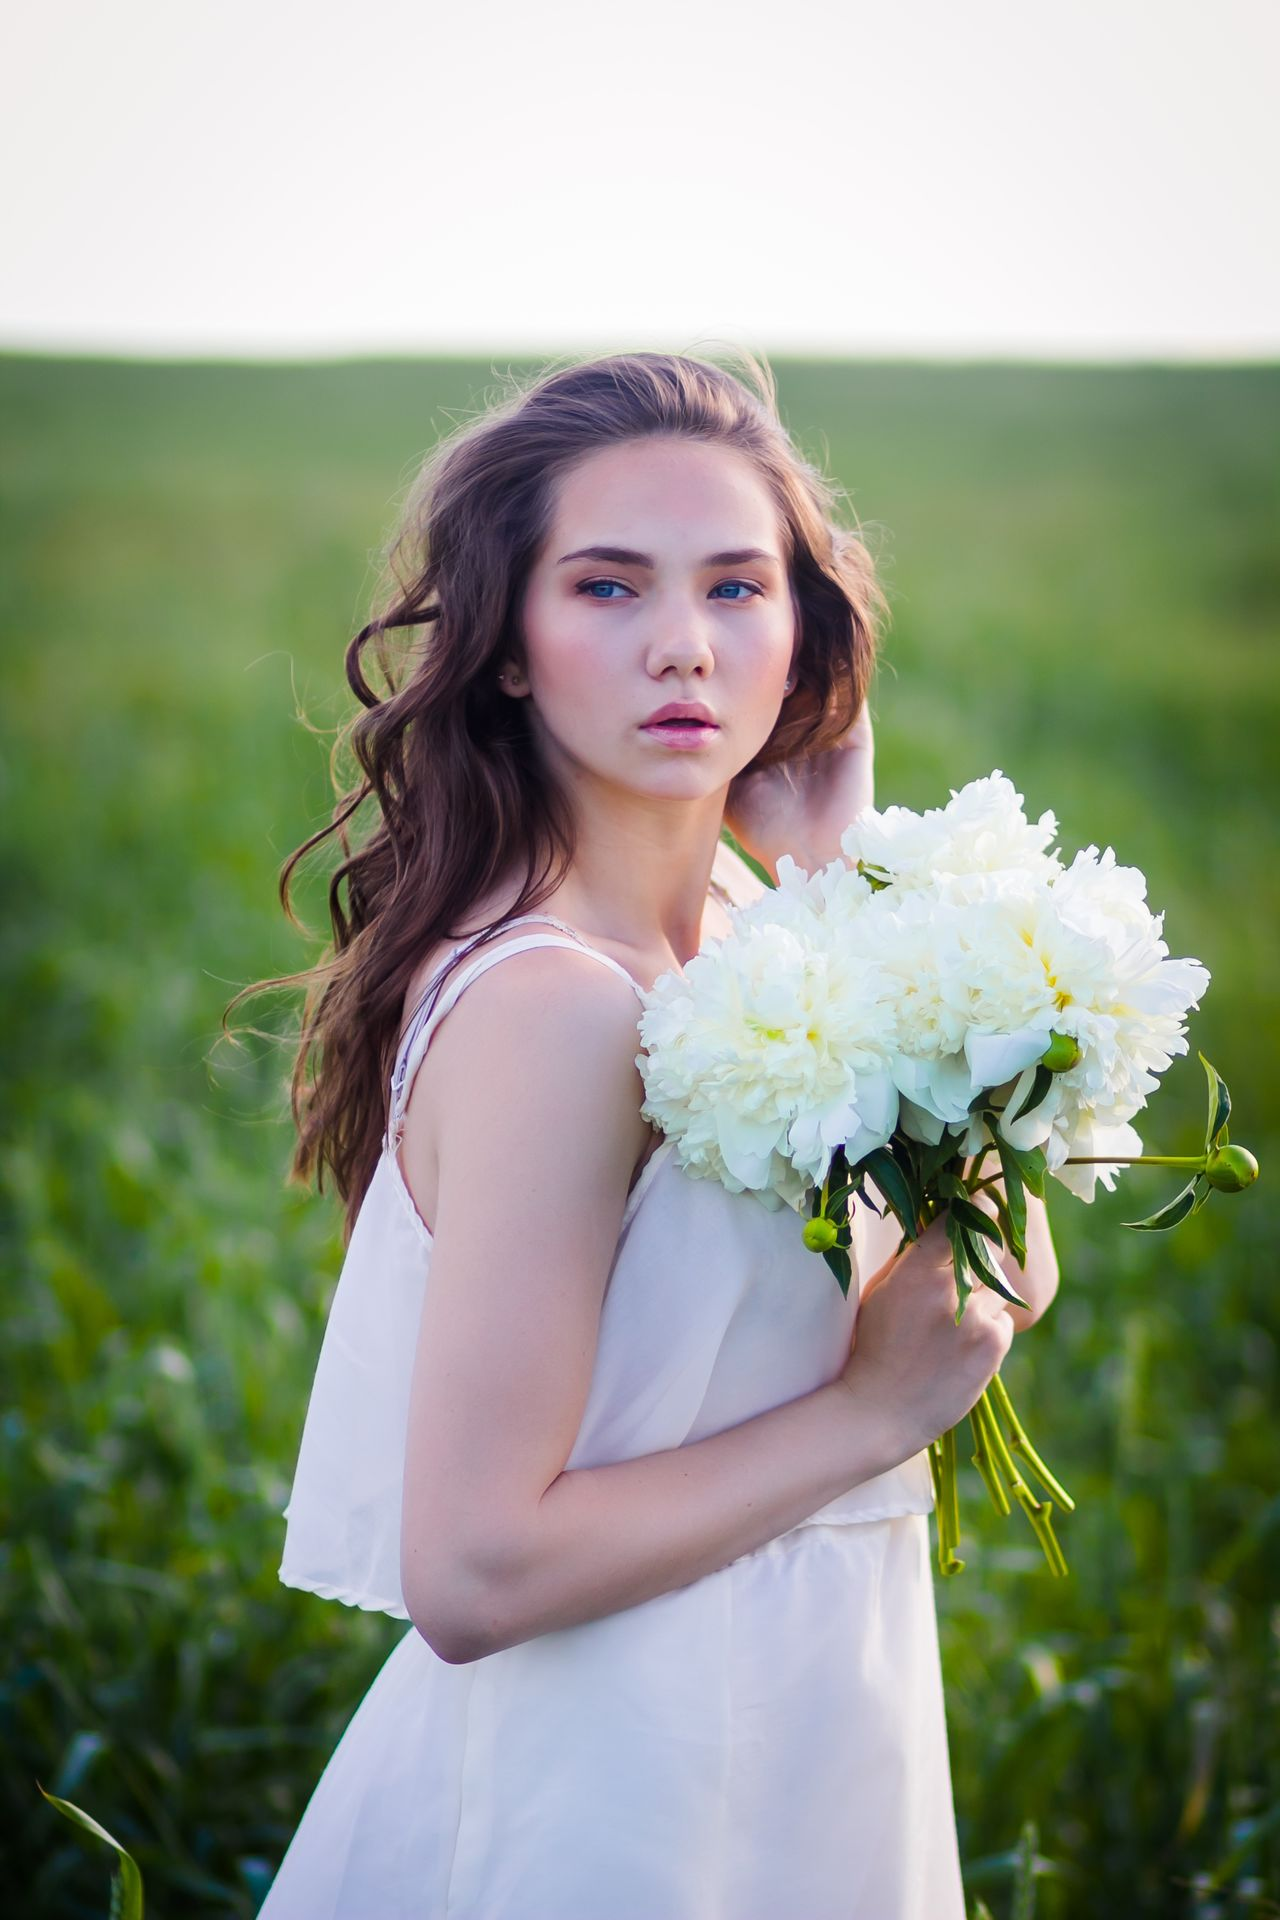 Bouquet Close-up Flower Flowers Focus On Foreground Freshness Grass Holding Nature Outdoors Pion Portrait Real People Standing Young Sommergefühle